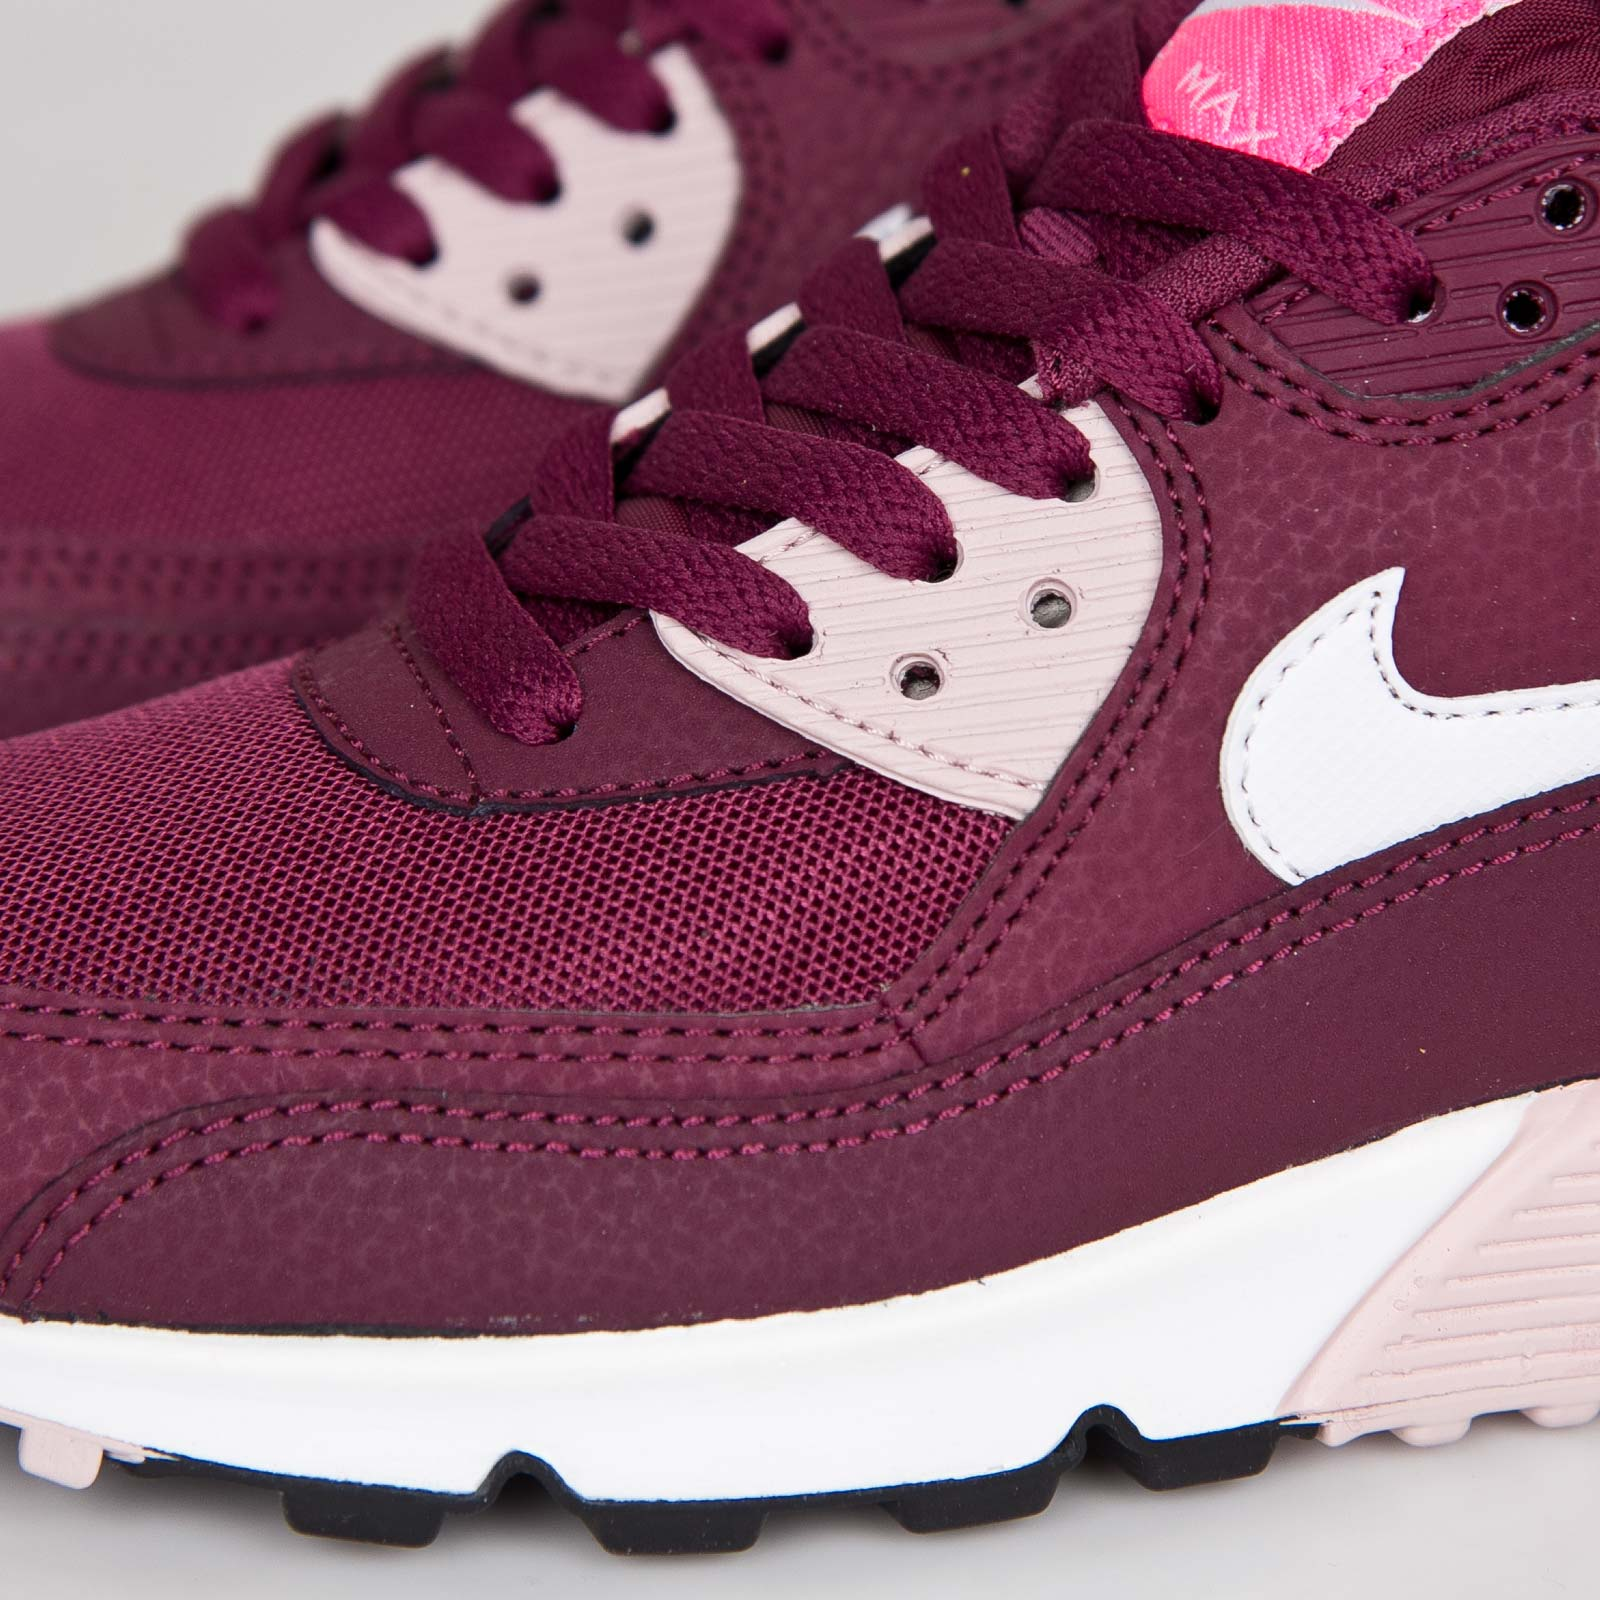 factory authentic d9242 0d201 Nike Wmns Air Max 90 Essential - 616730-600 - Sneakersnstuff   sneakers   streetwear  online since 1999